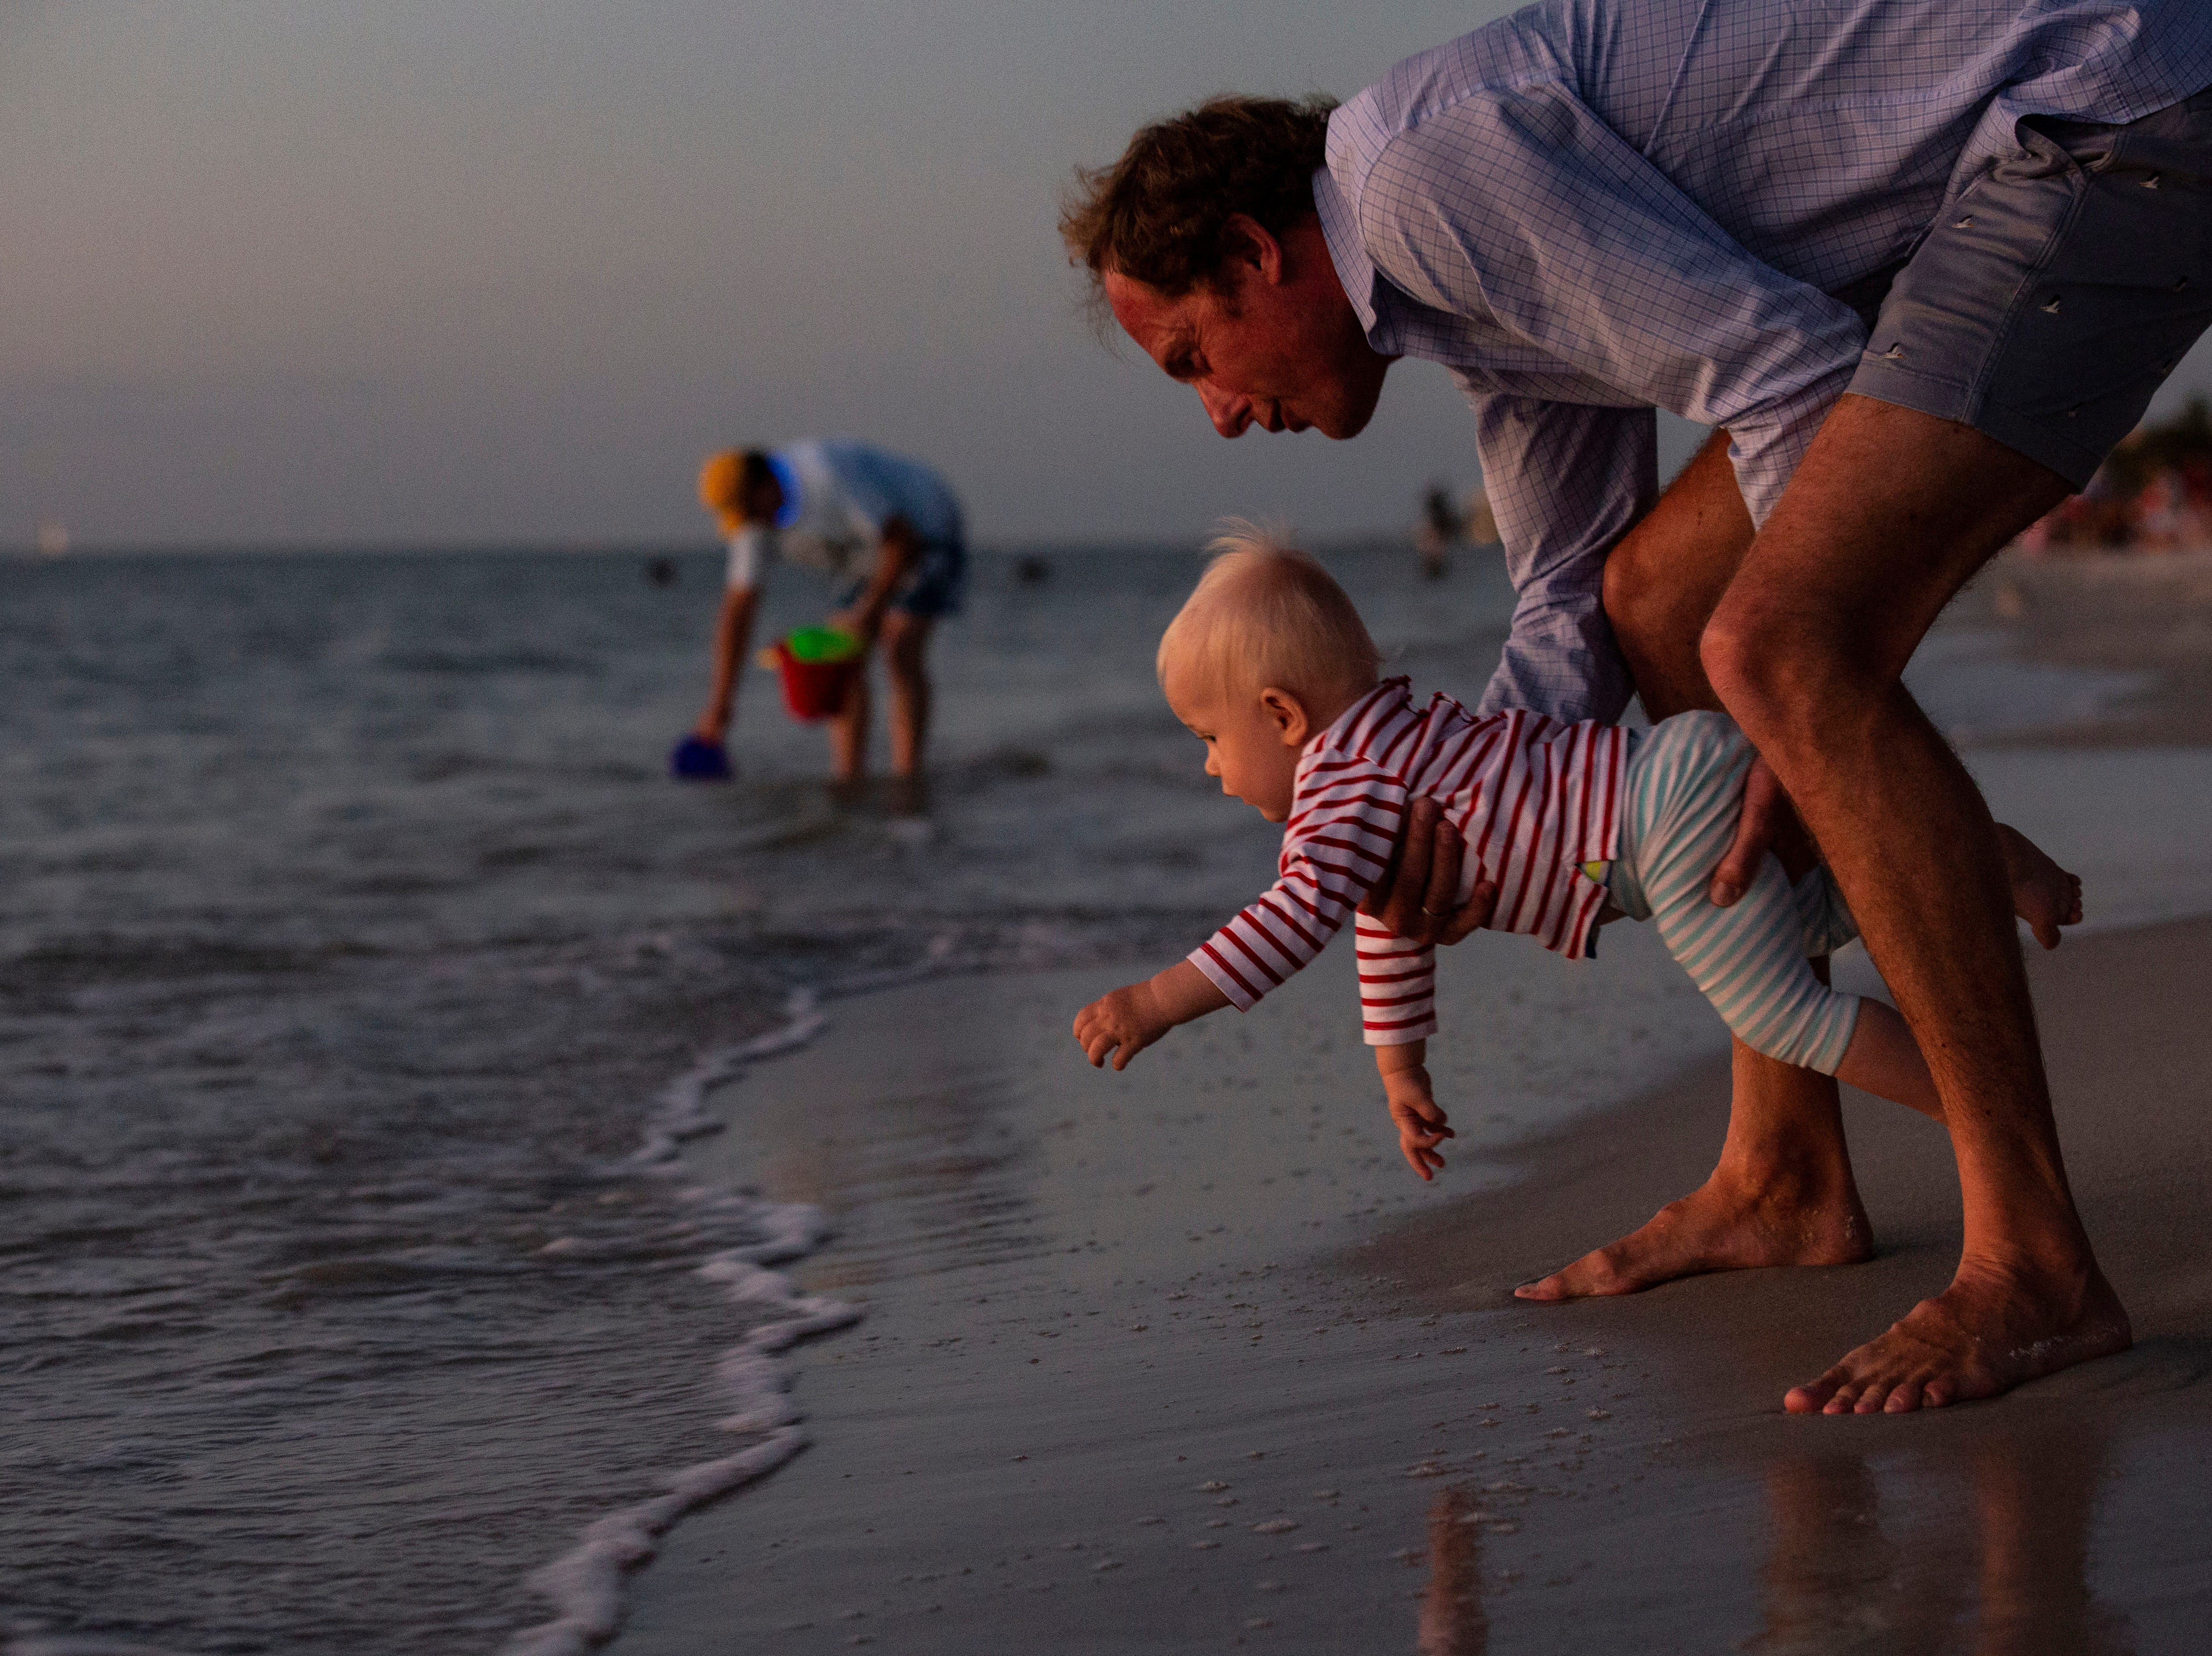 Ari Dorrestijn and his 12-months-old son, Sebastian, experience their first New Year's Eve in Florida on Monday, Dec. 31, 2018, at the Naples Pier beach. The Dorrestijn's traveled from New York to be with their family in Florida to celebrate the year's end.